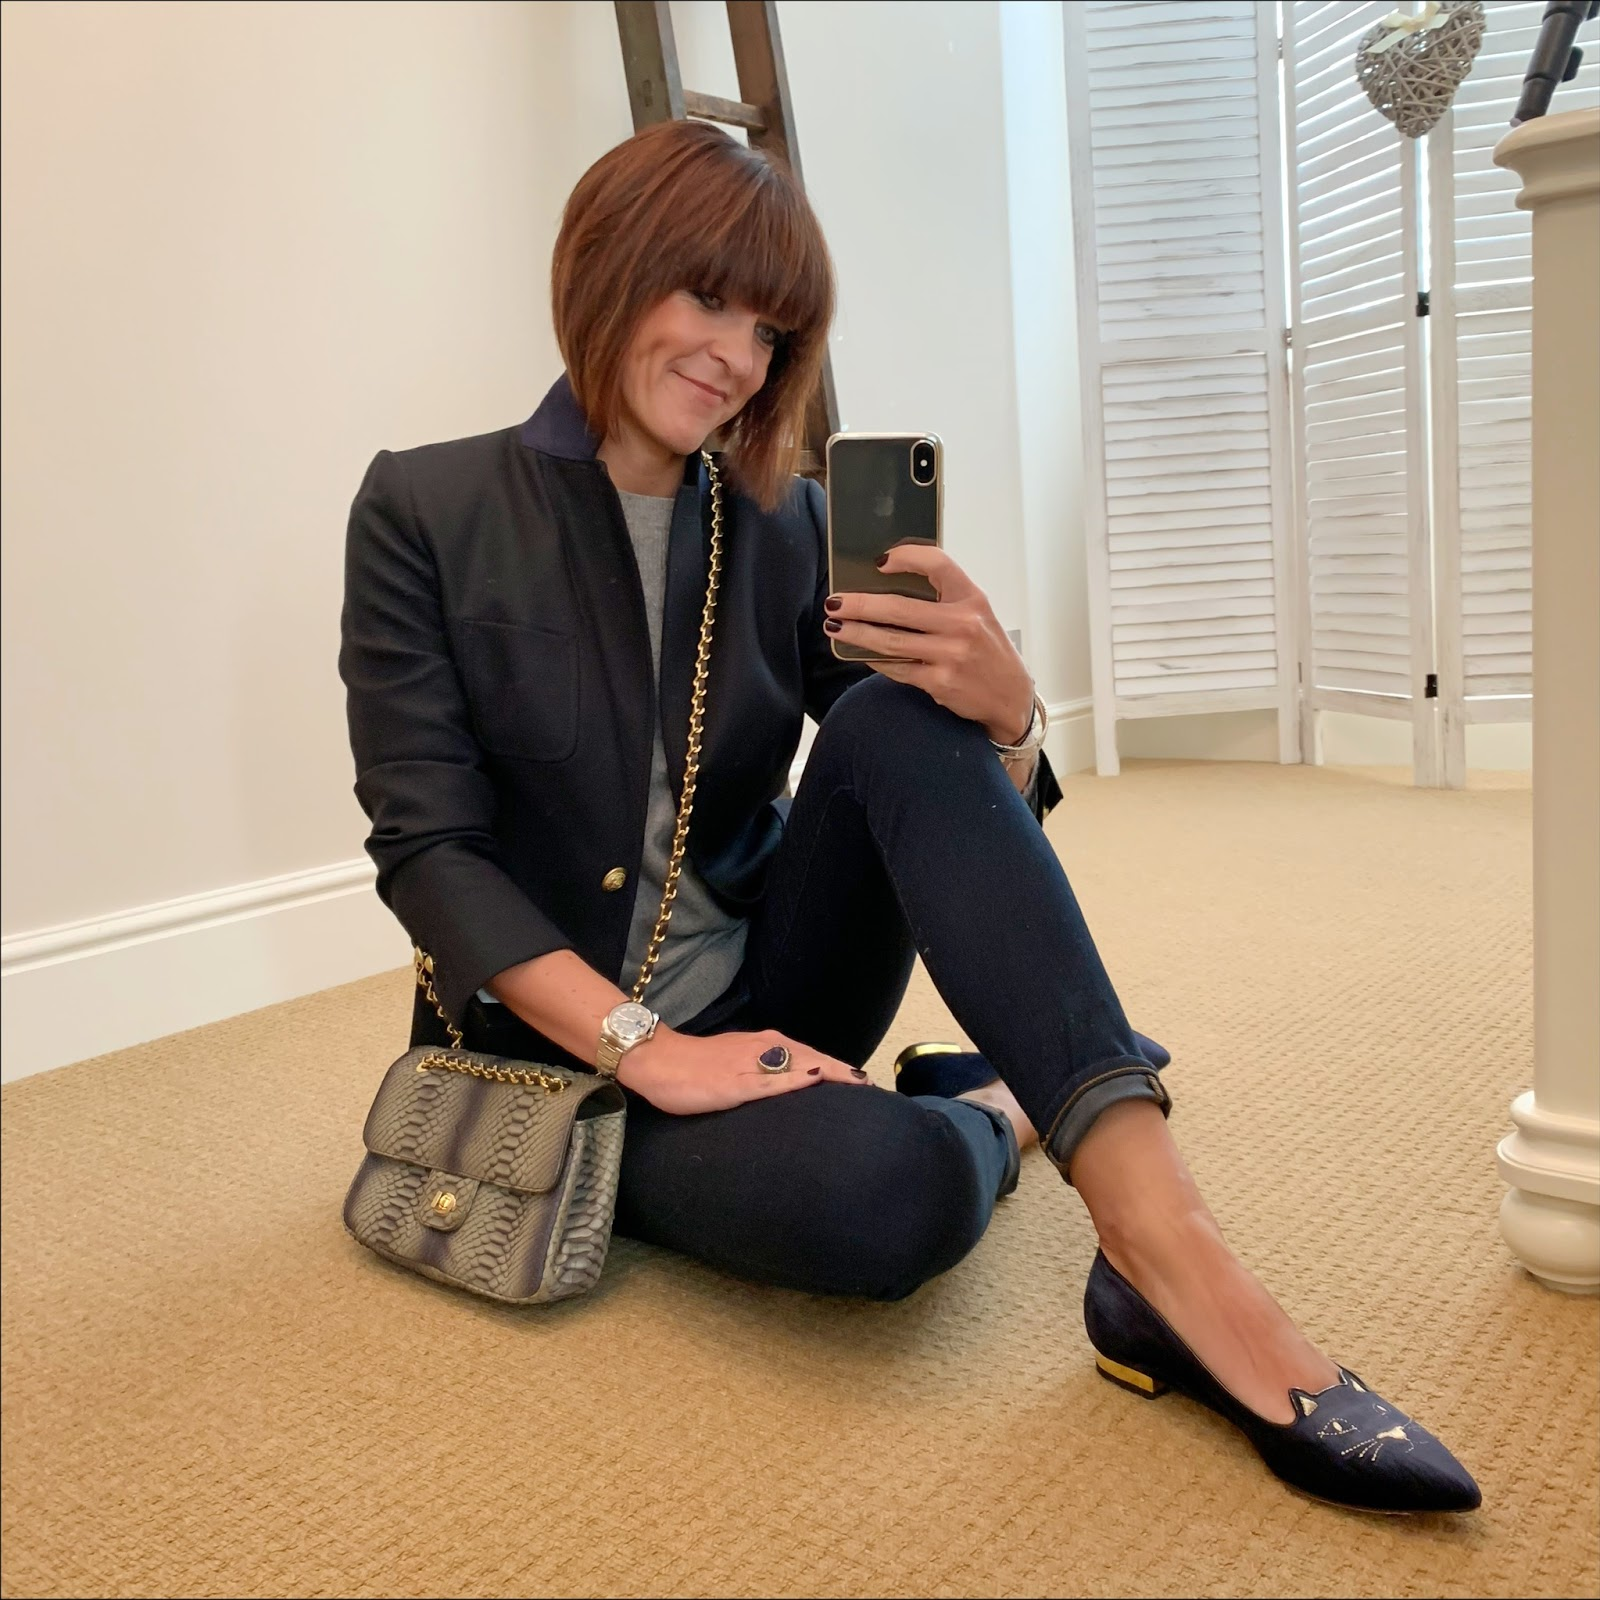 my midlife fashion, j crew regent blazer, h and m cashmere crew neck jumper, j crew 8 inch toothpick skinny jeans, vintage cross body bag, charlotte olympia kitty flat shoes